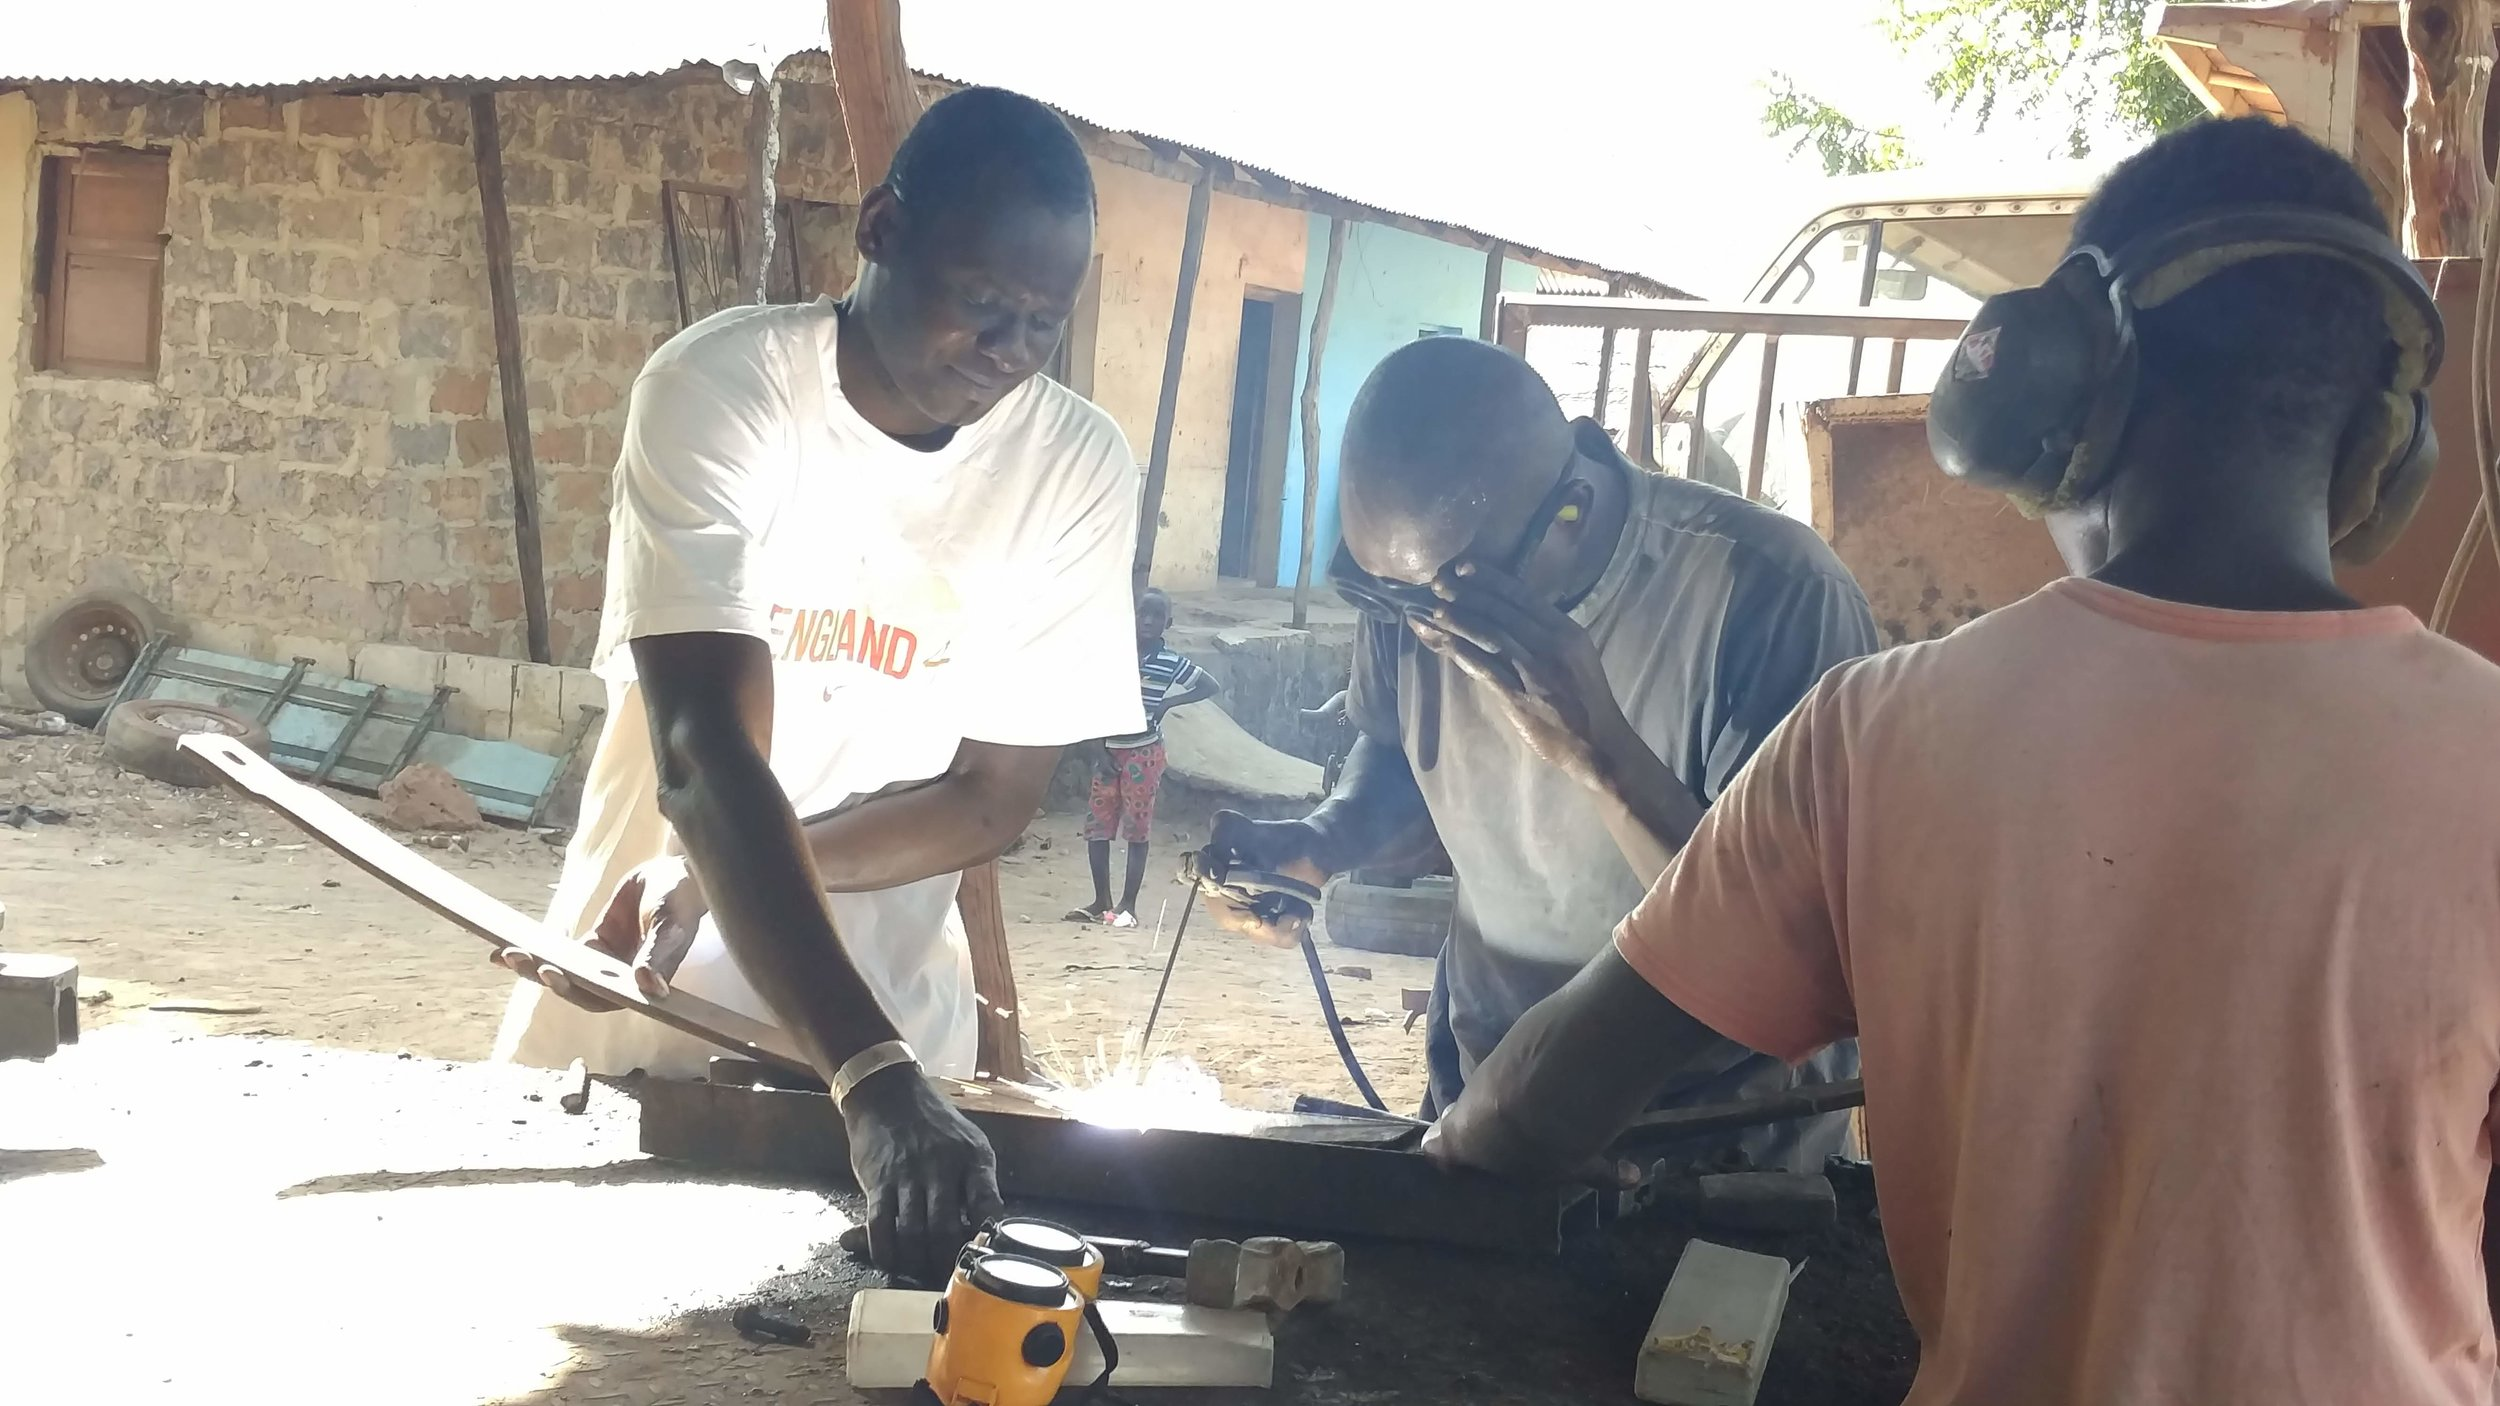 Sergio, center, welds together a piece of metal at a the local welding shop where he works. A few years ago, Sergio was unemployed and only made a few dollars here and there from working odd jobs. Determined to escape a life of poverty, he enrolled in the WAVS Vocational School's welding program.